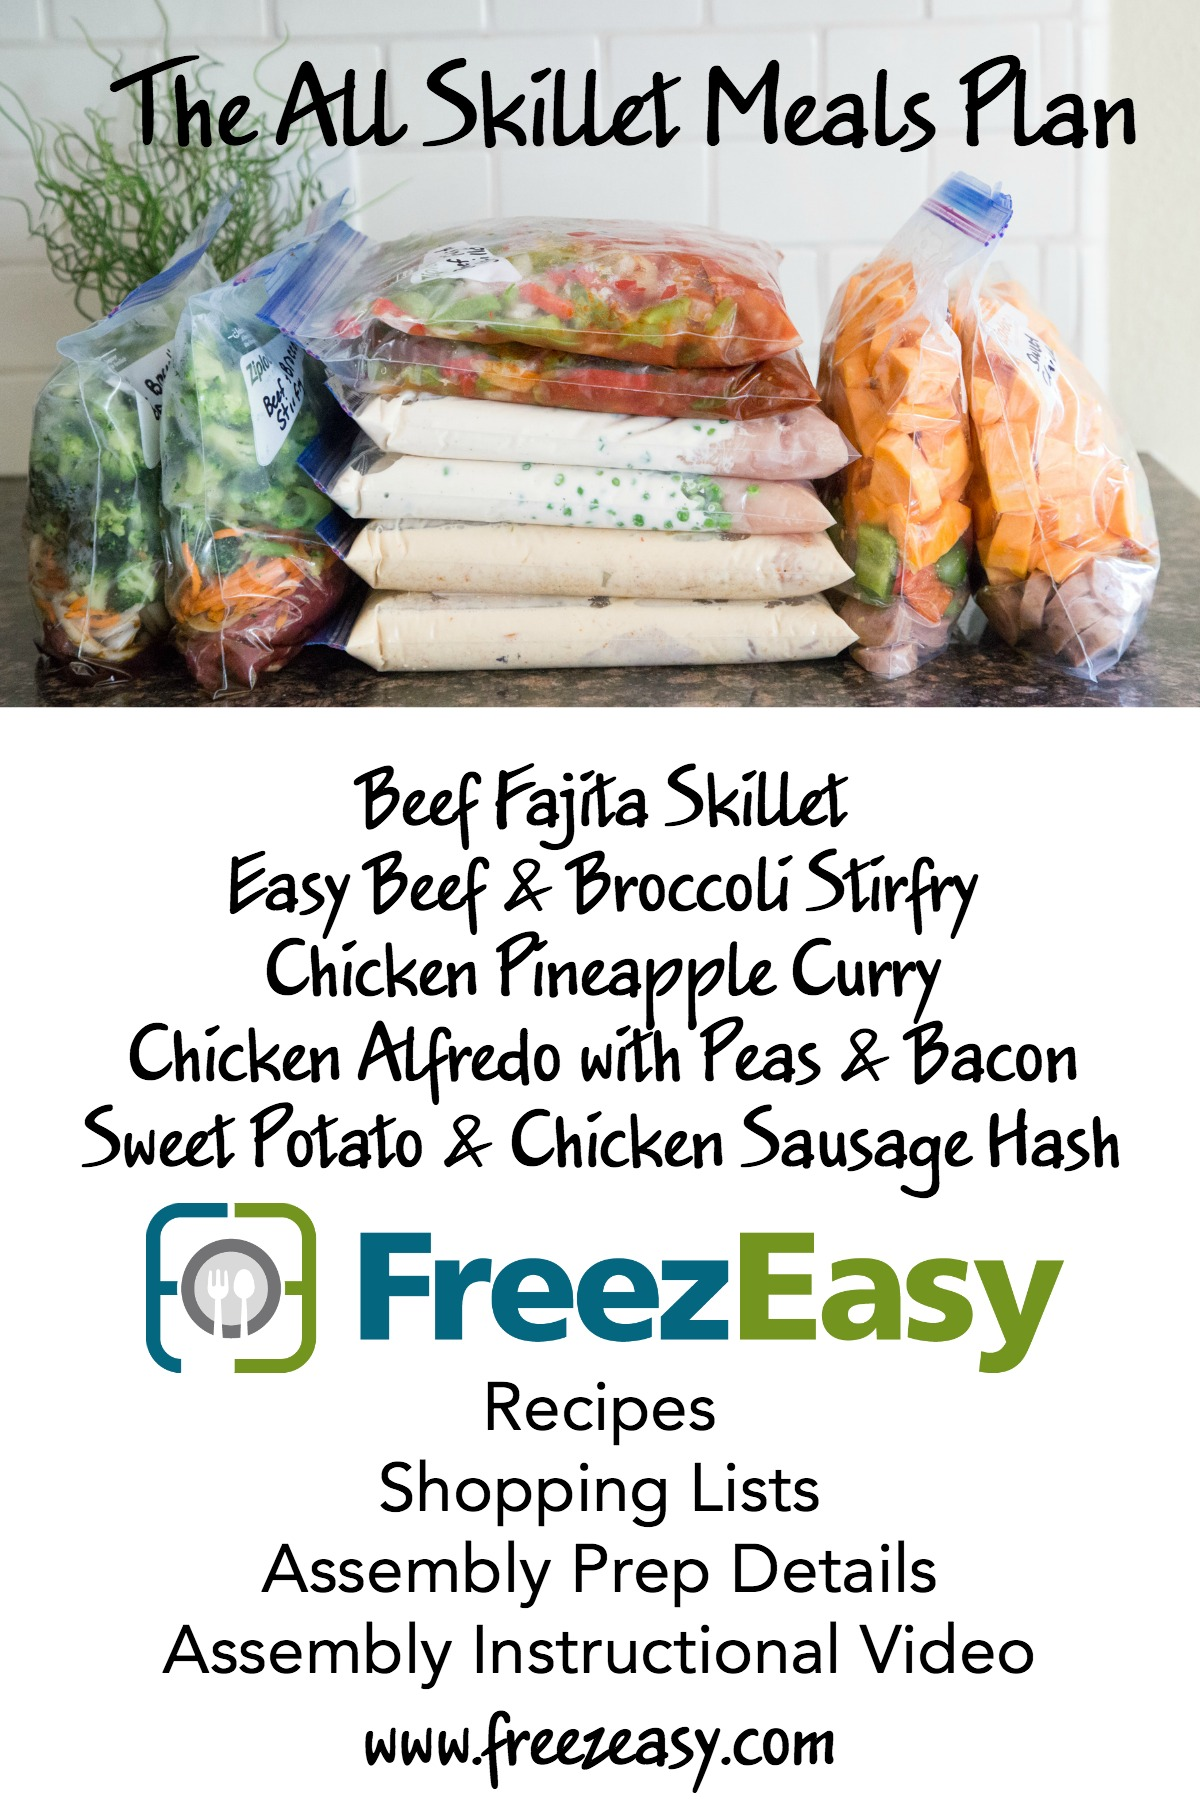 All Skillet Meals Plan from FreezEasy.com